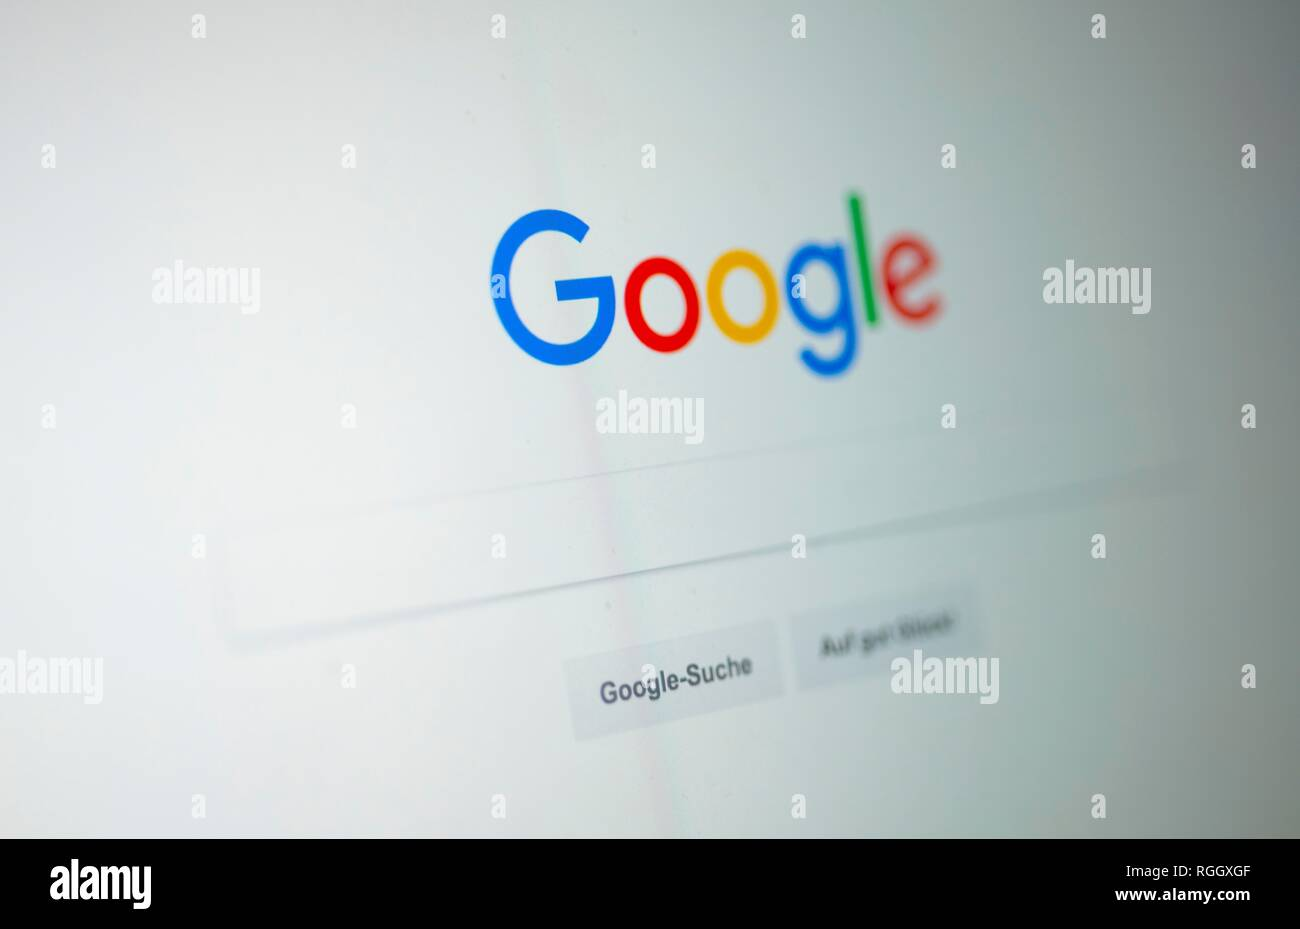 Google, Homepage, Search Engine, Internet, Screenshot, Germany - Stock Image